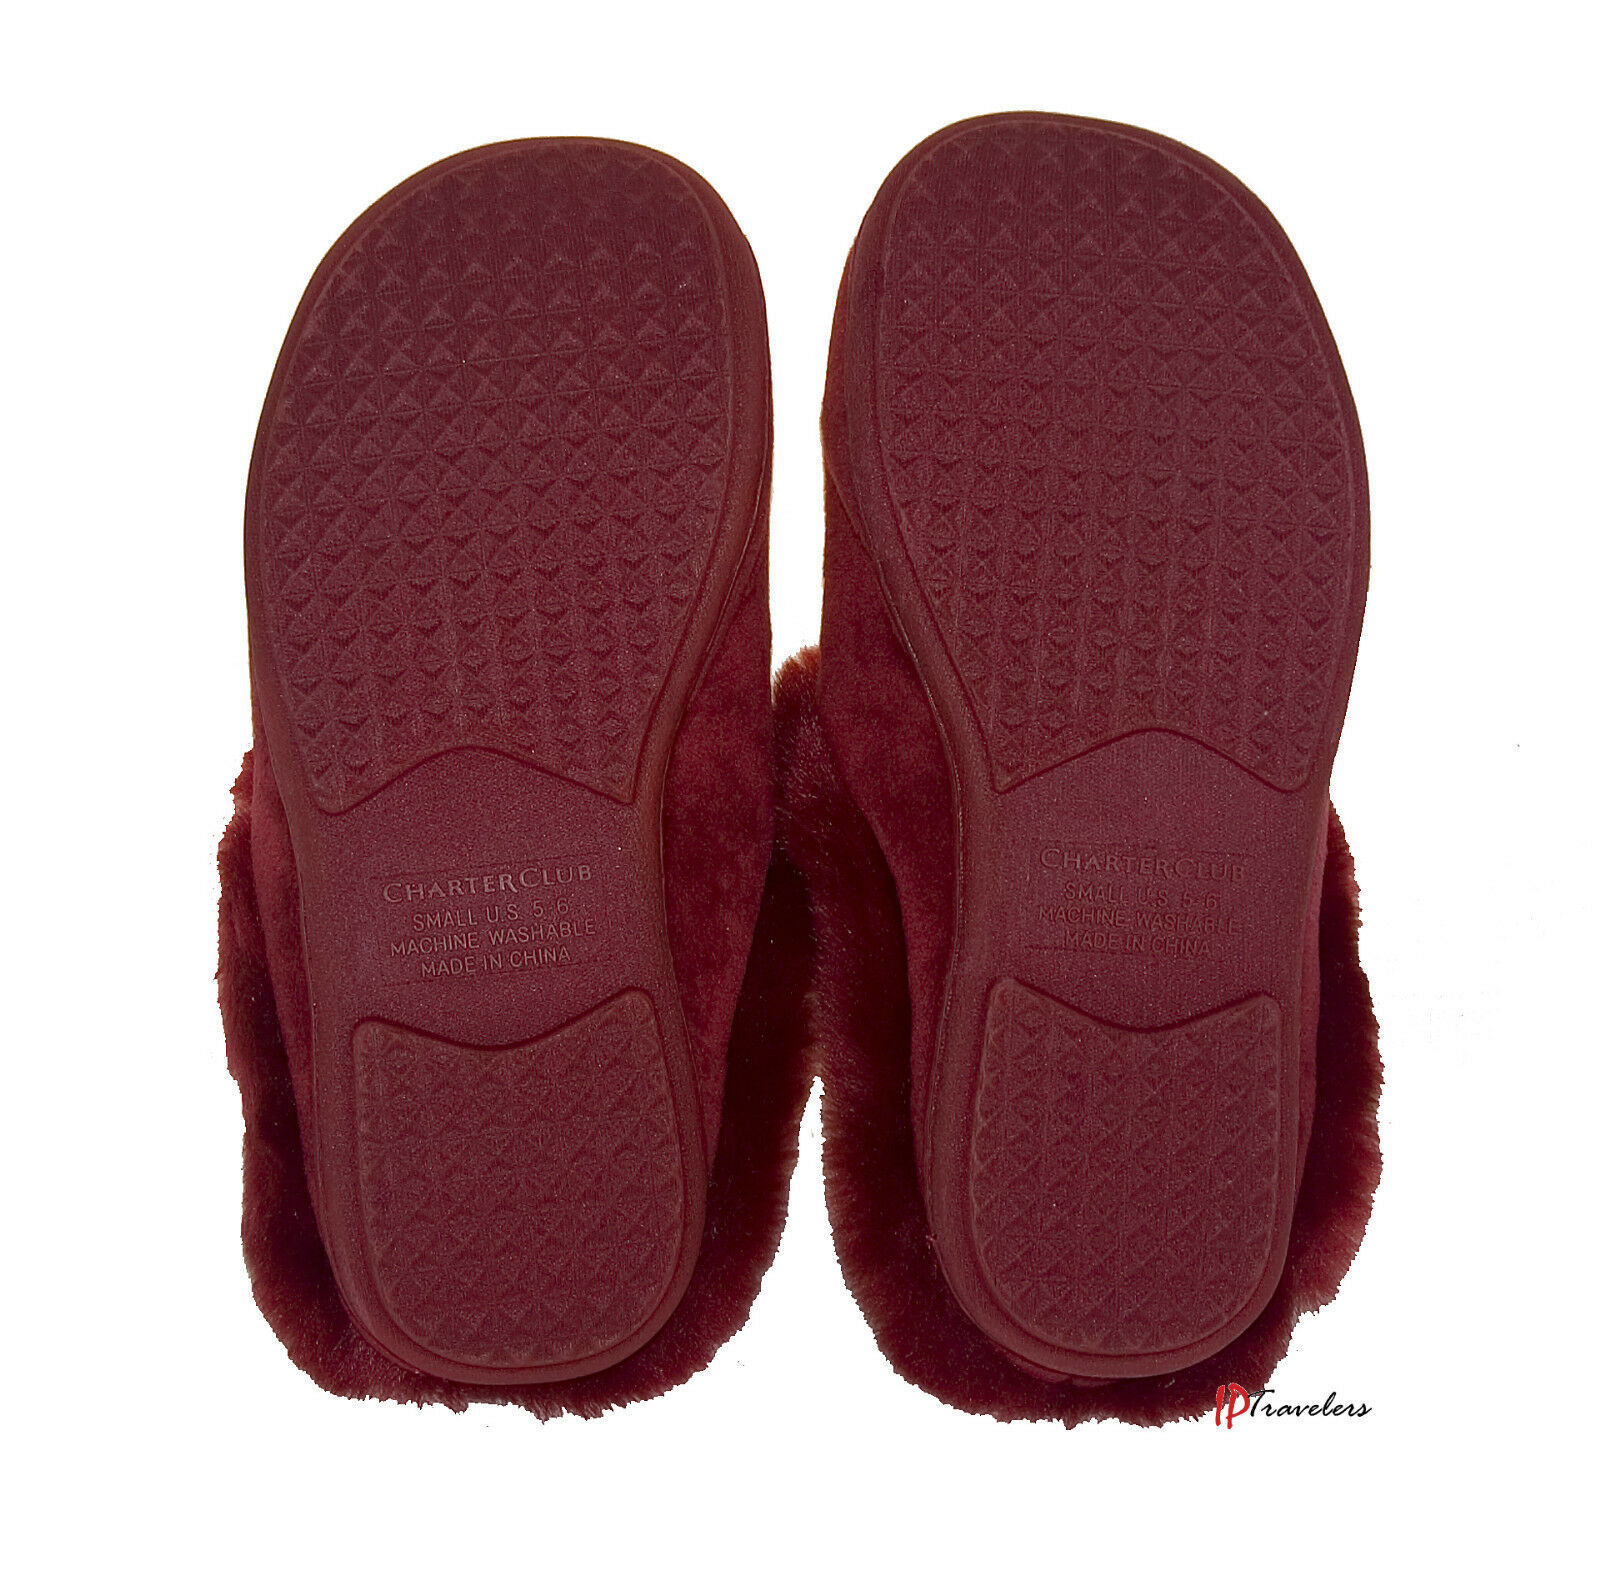 Charter Club Women's Slippers Red - Faux Fur Size Small 5-6 CC502 Scuffs $30